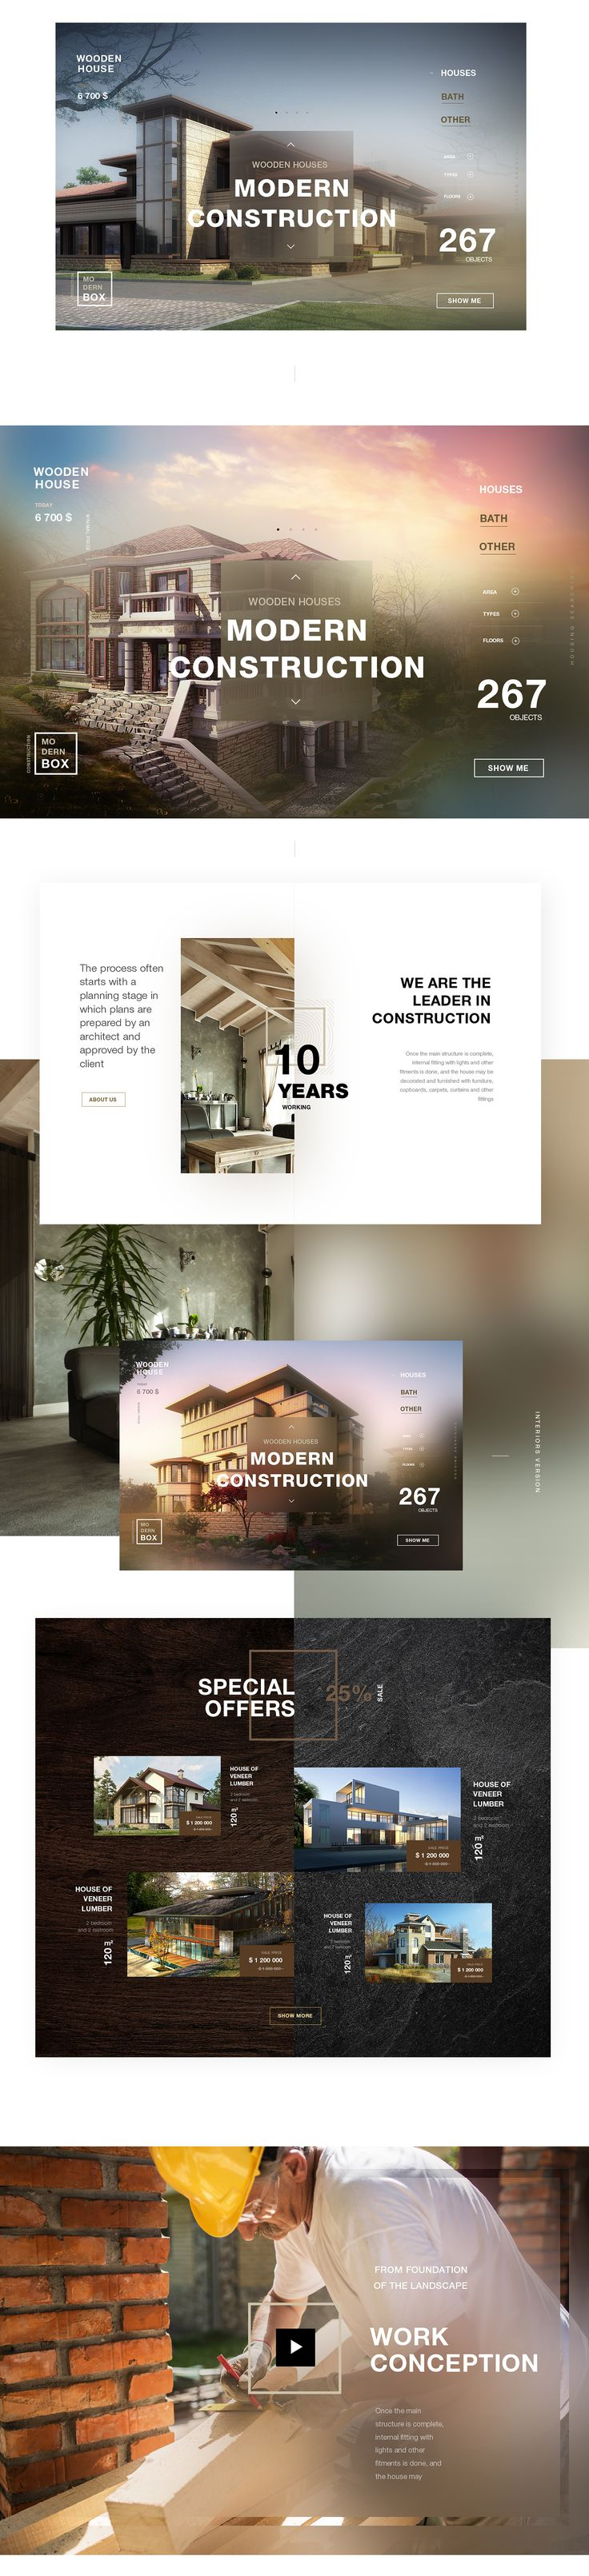 Yes, Weu0027re Back With Another One Of Those Super Long Posts So Get Your  Scrolling Fingers Out And Check Out Some New Inspiring Web Designs!